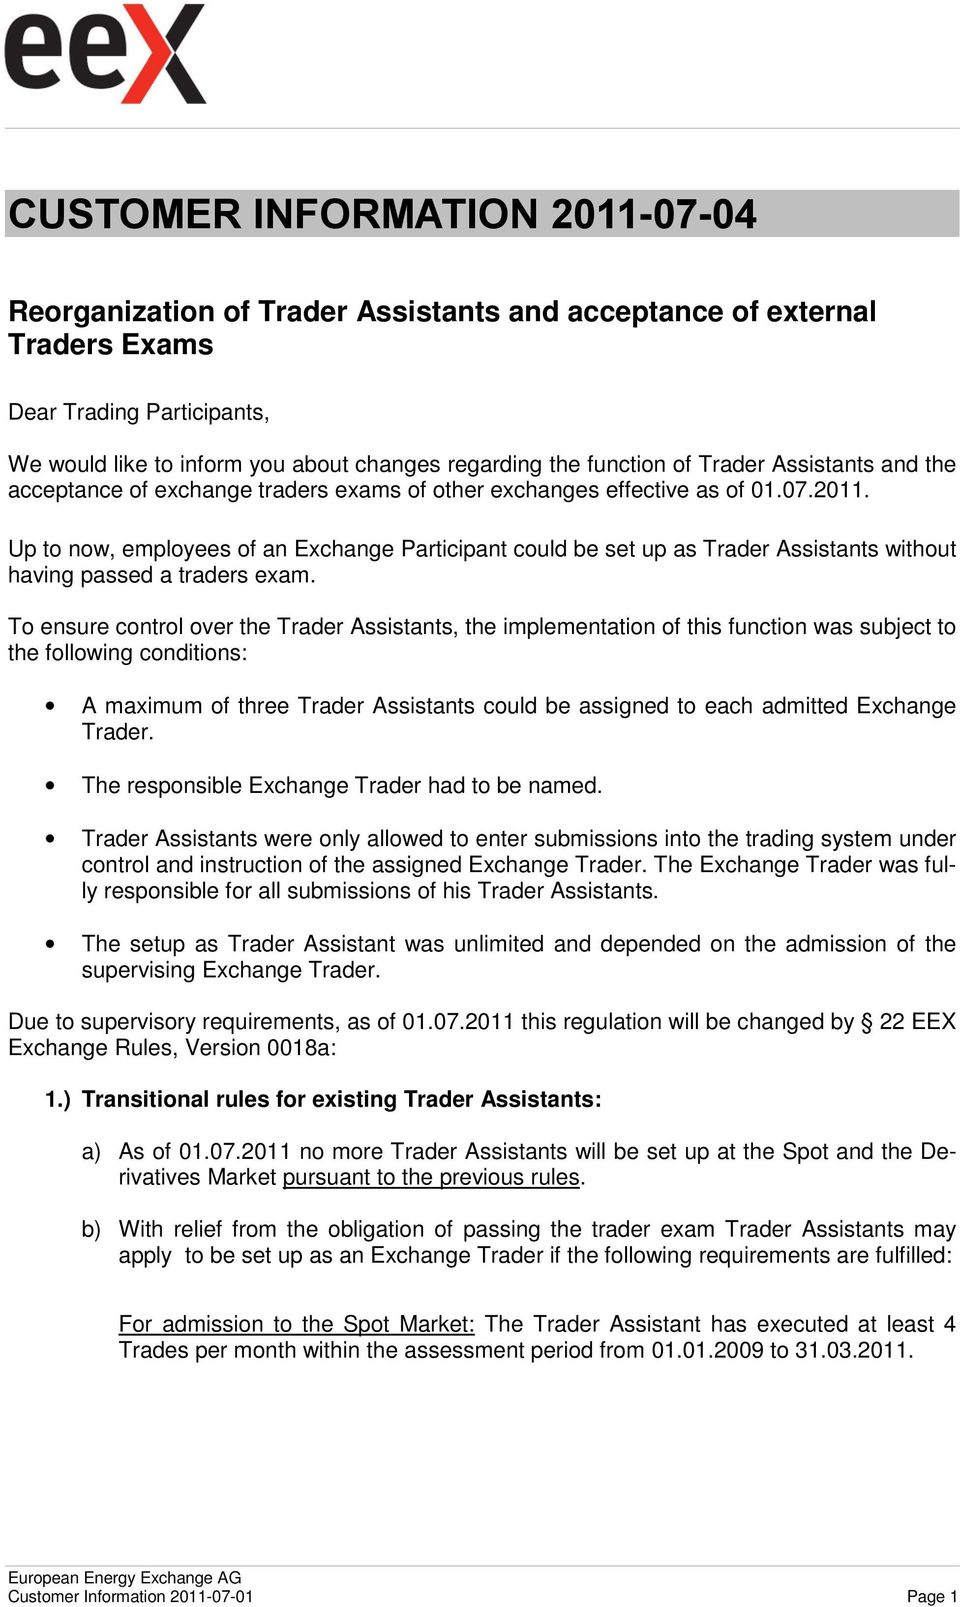 Up to now, employees of an Exchange Participant could be set up as Trader Assistants without having passed a traders exam.